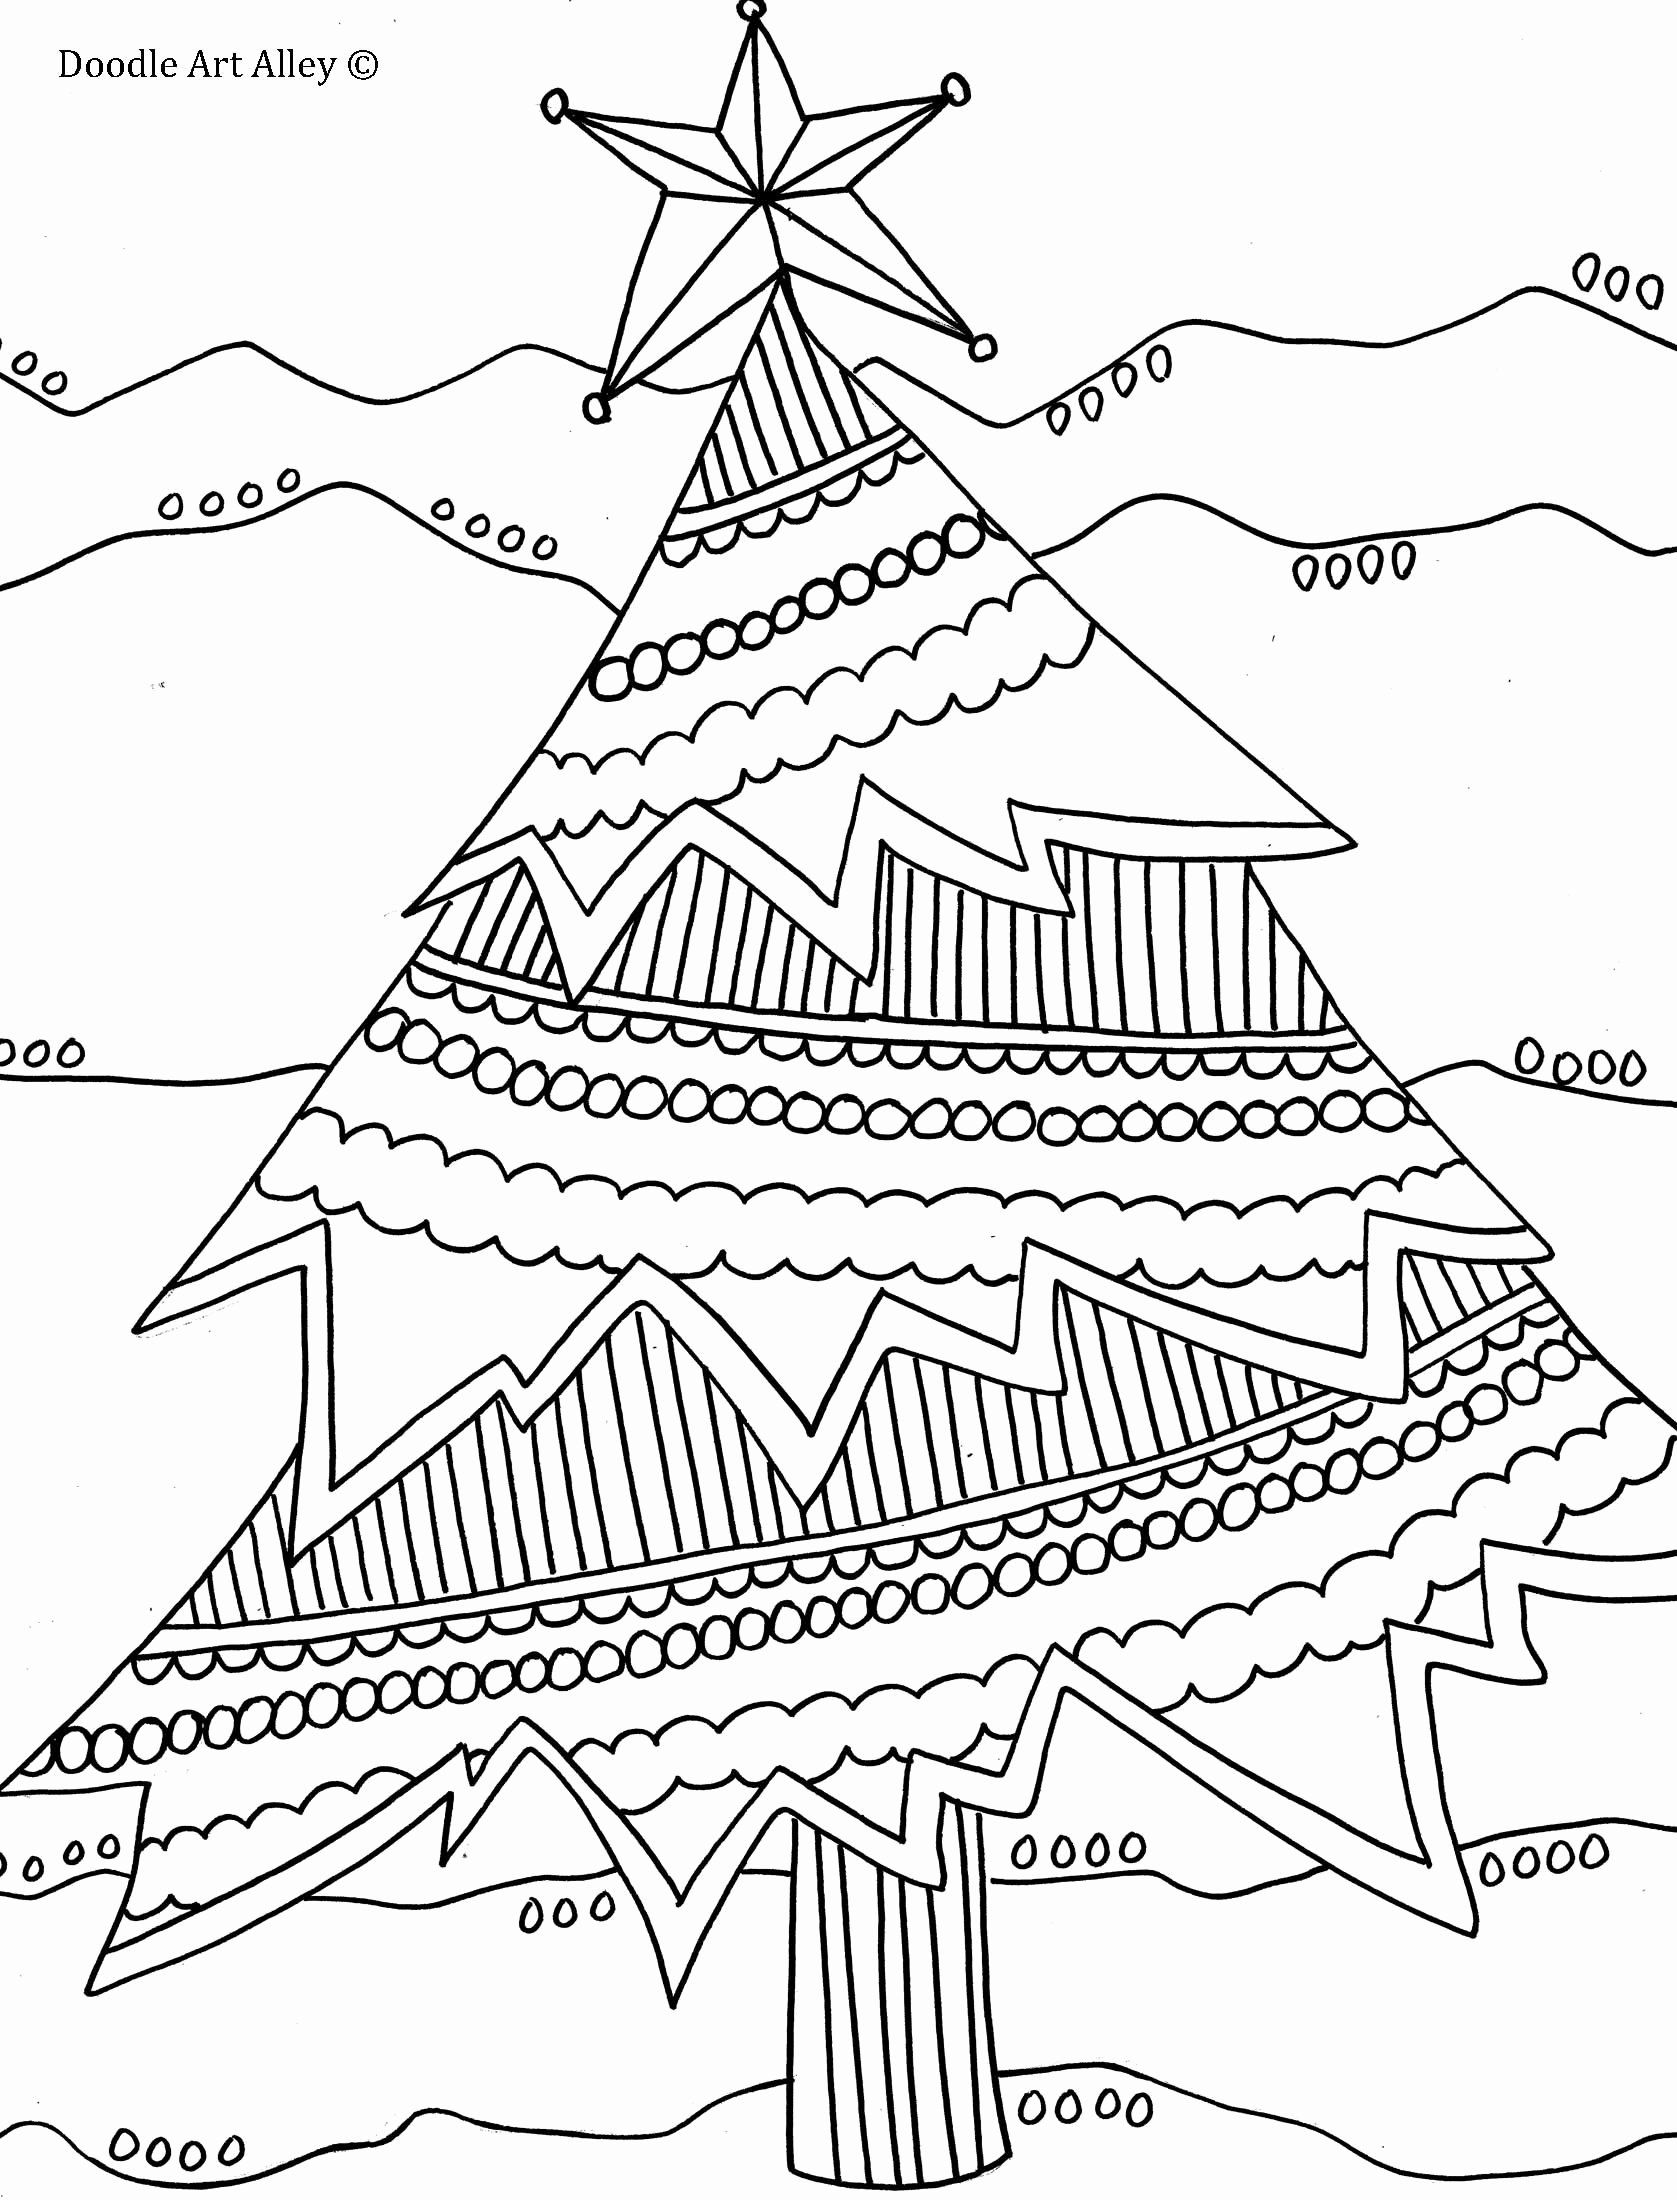 Coloring Page Of Evergreen Tree Best Of Christmas Coloring Pages For Adults Tree Coloring Page Christmas Tree Coloring Page Christmas Coloring Pages